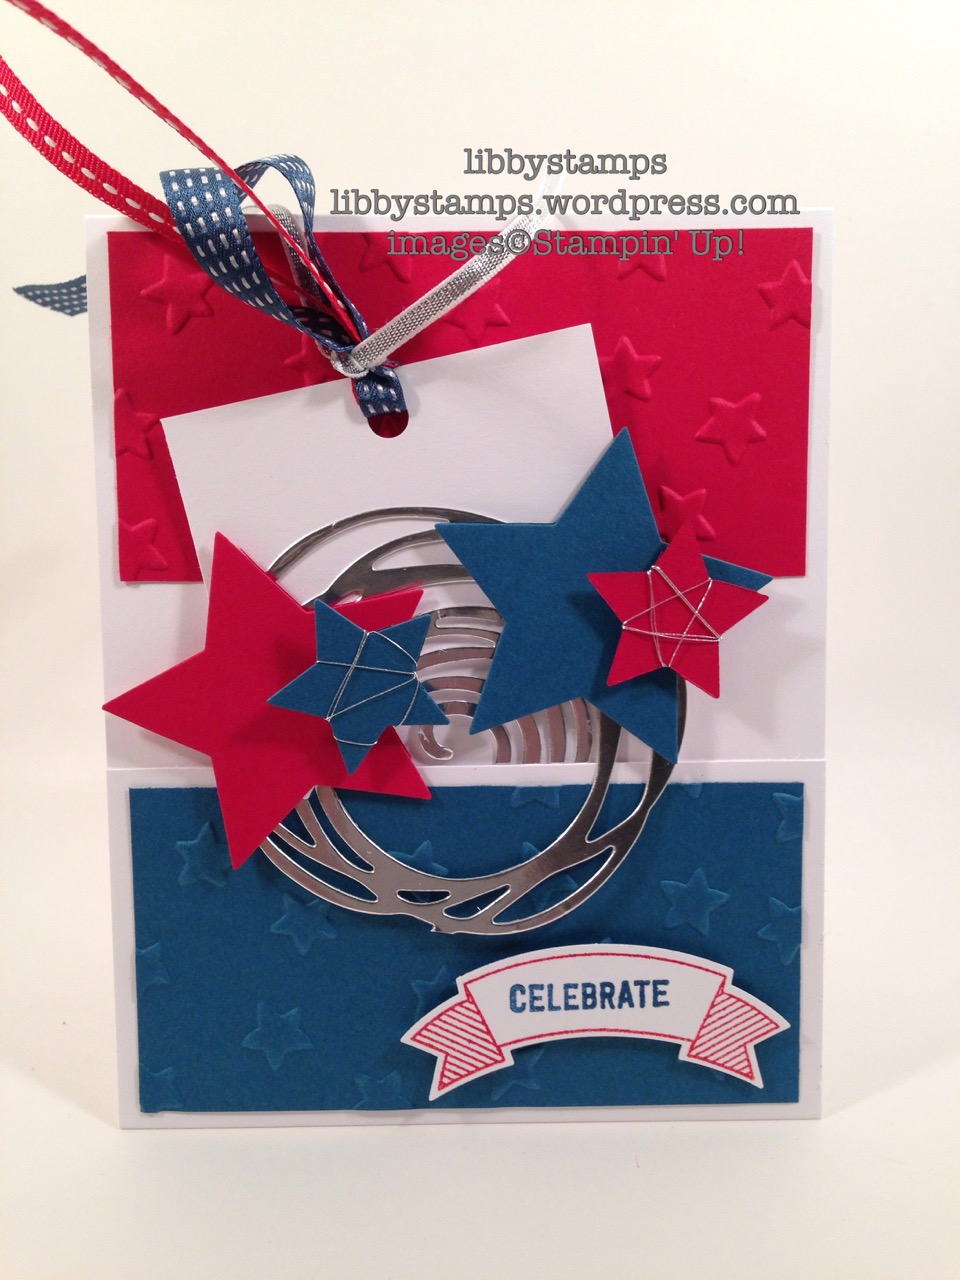 libbystamps, stampin up, Swirly Scribbles Thinlits, Silver Metallic Thread, Stars Framelits, SwWWC74, Thoughtful Banners, Duet Banner, Lucky Stars EF, July 4